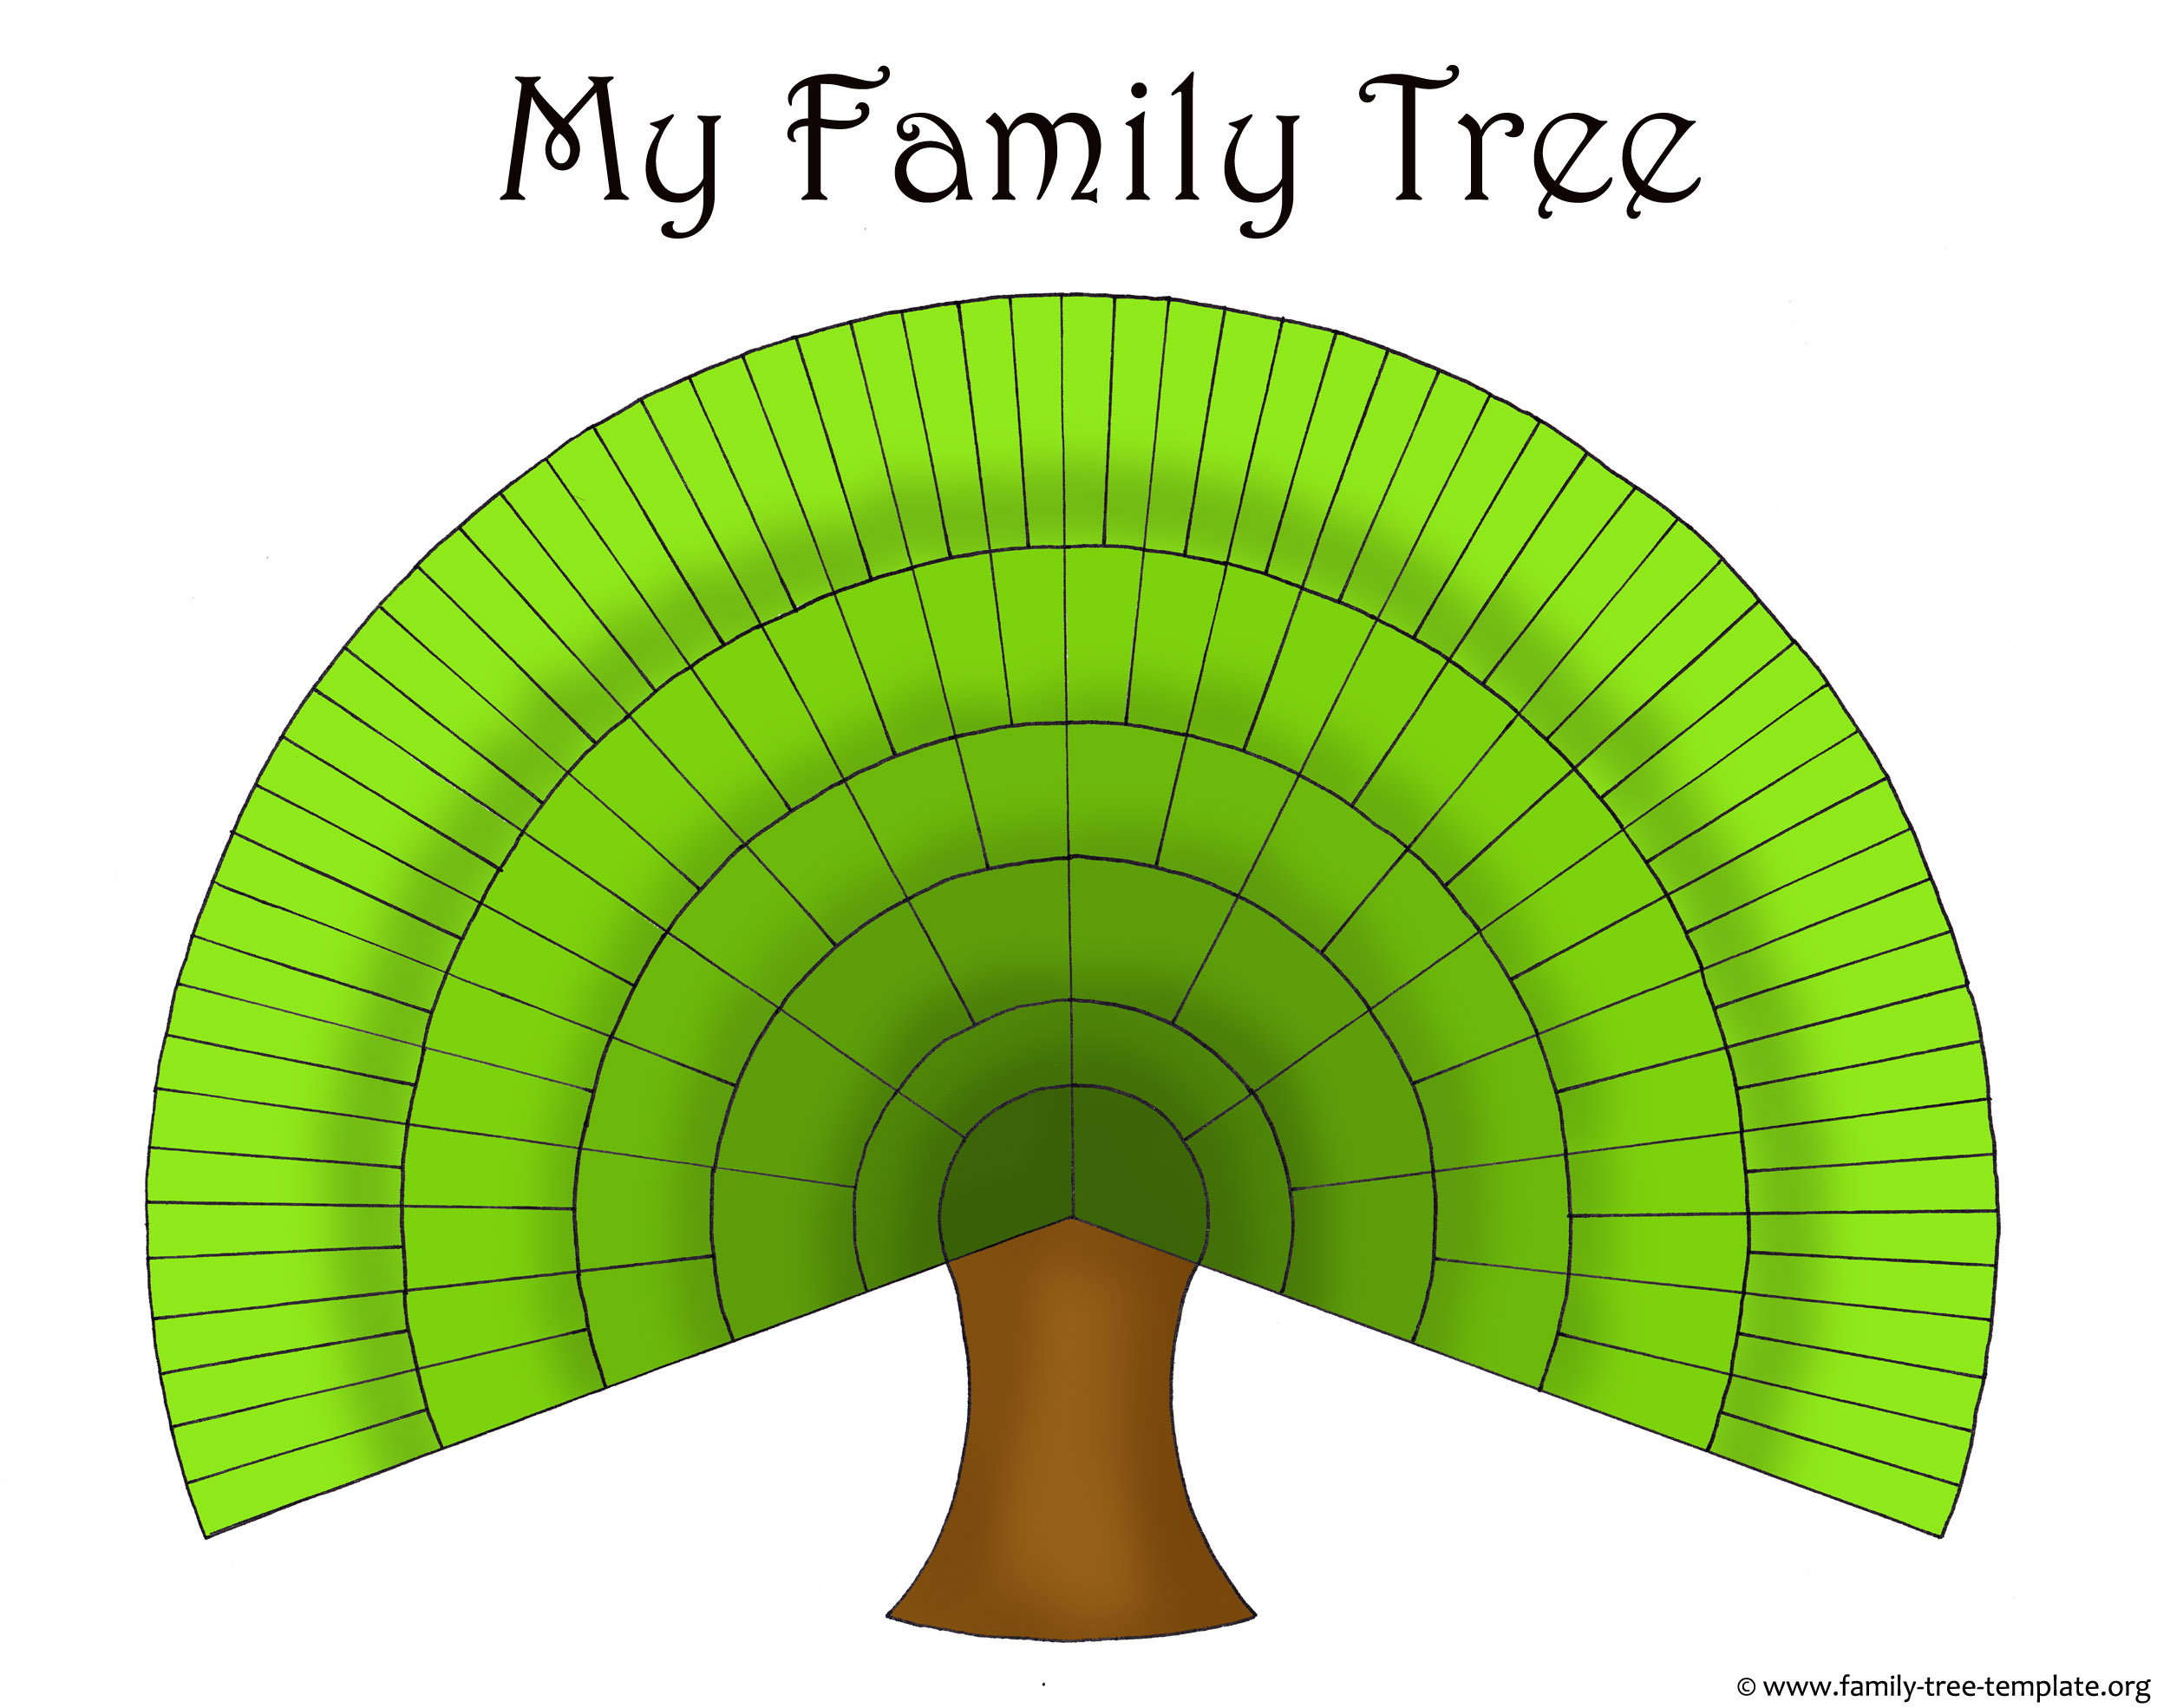 Blank family trees templates and free genealogy graphics big family tree template tracing your ancestors all the way back to your great great great great grandparents saigontimesfo